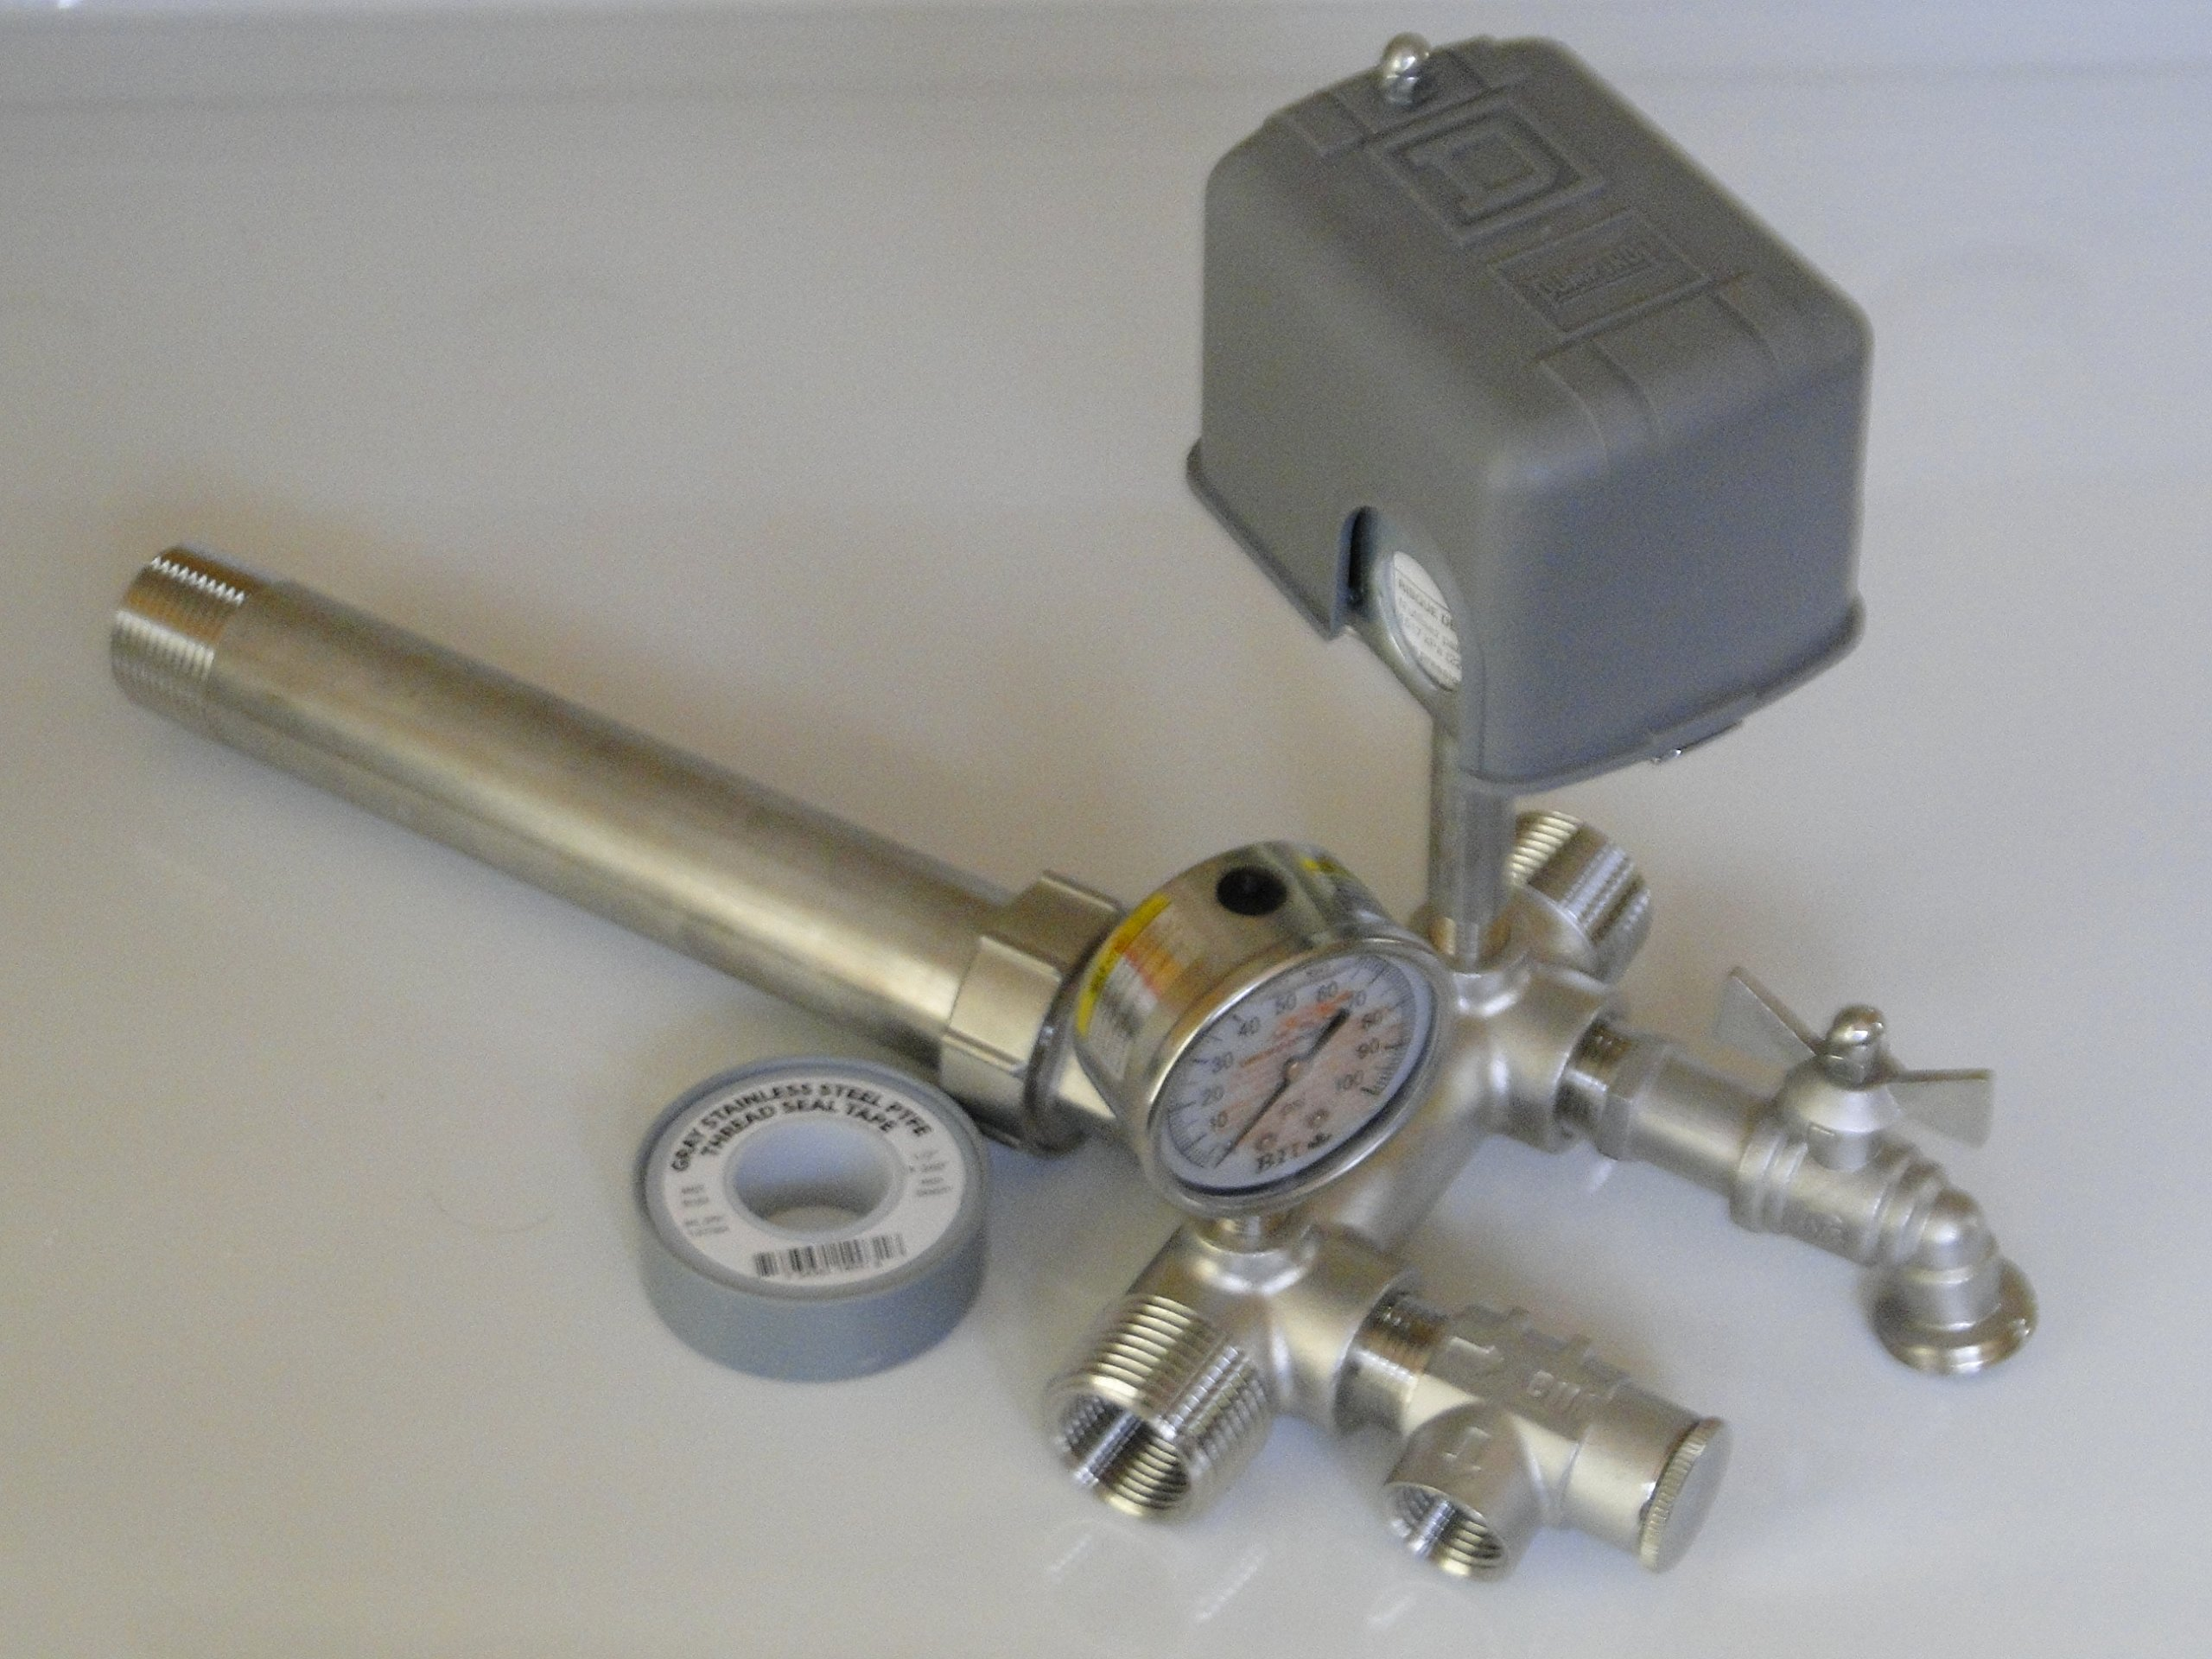 STAINLESS STEEL 1 x 11 Tank Tee Kit + UNION Installation Water Well Pressure Tank with SQUARE D 30/50 FSG2 pressure switch